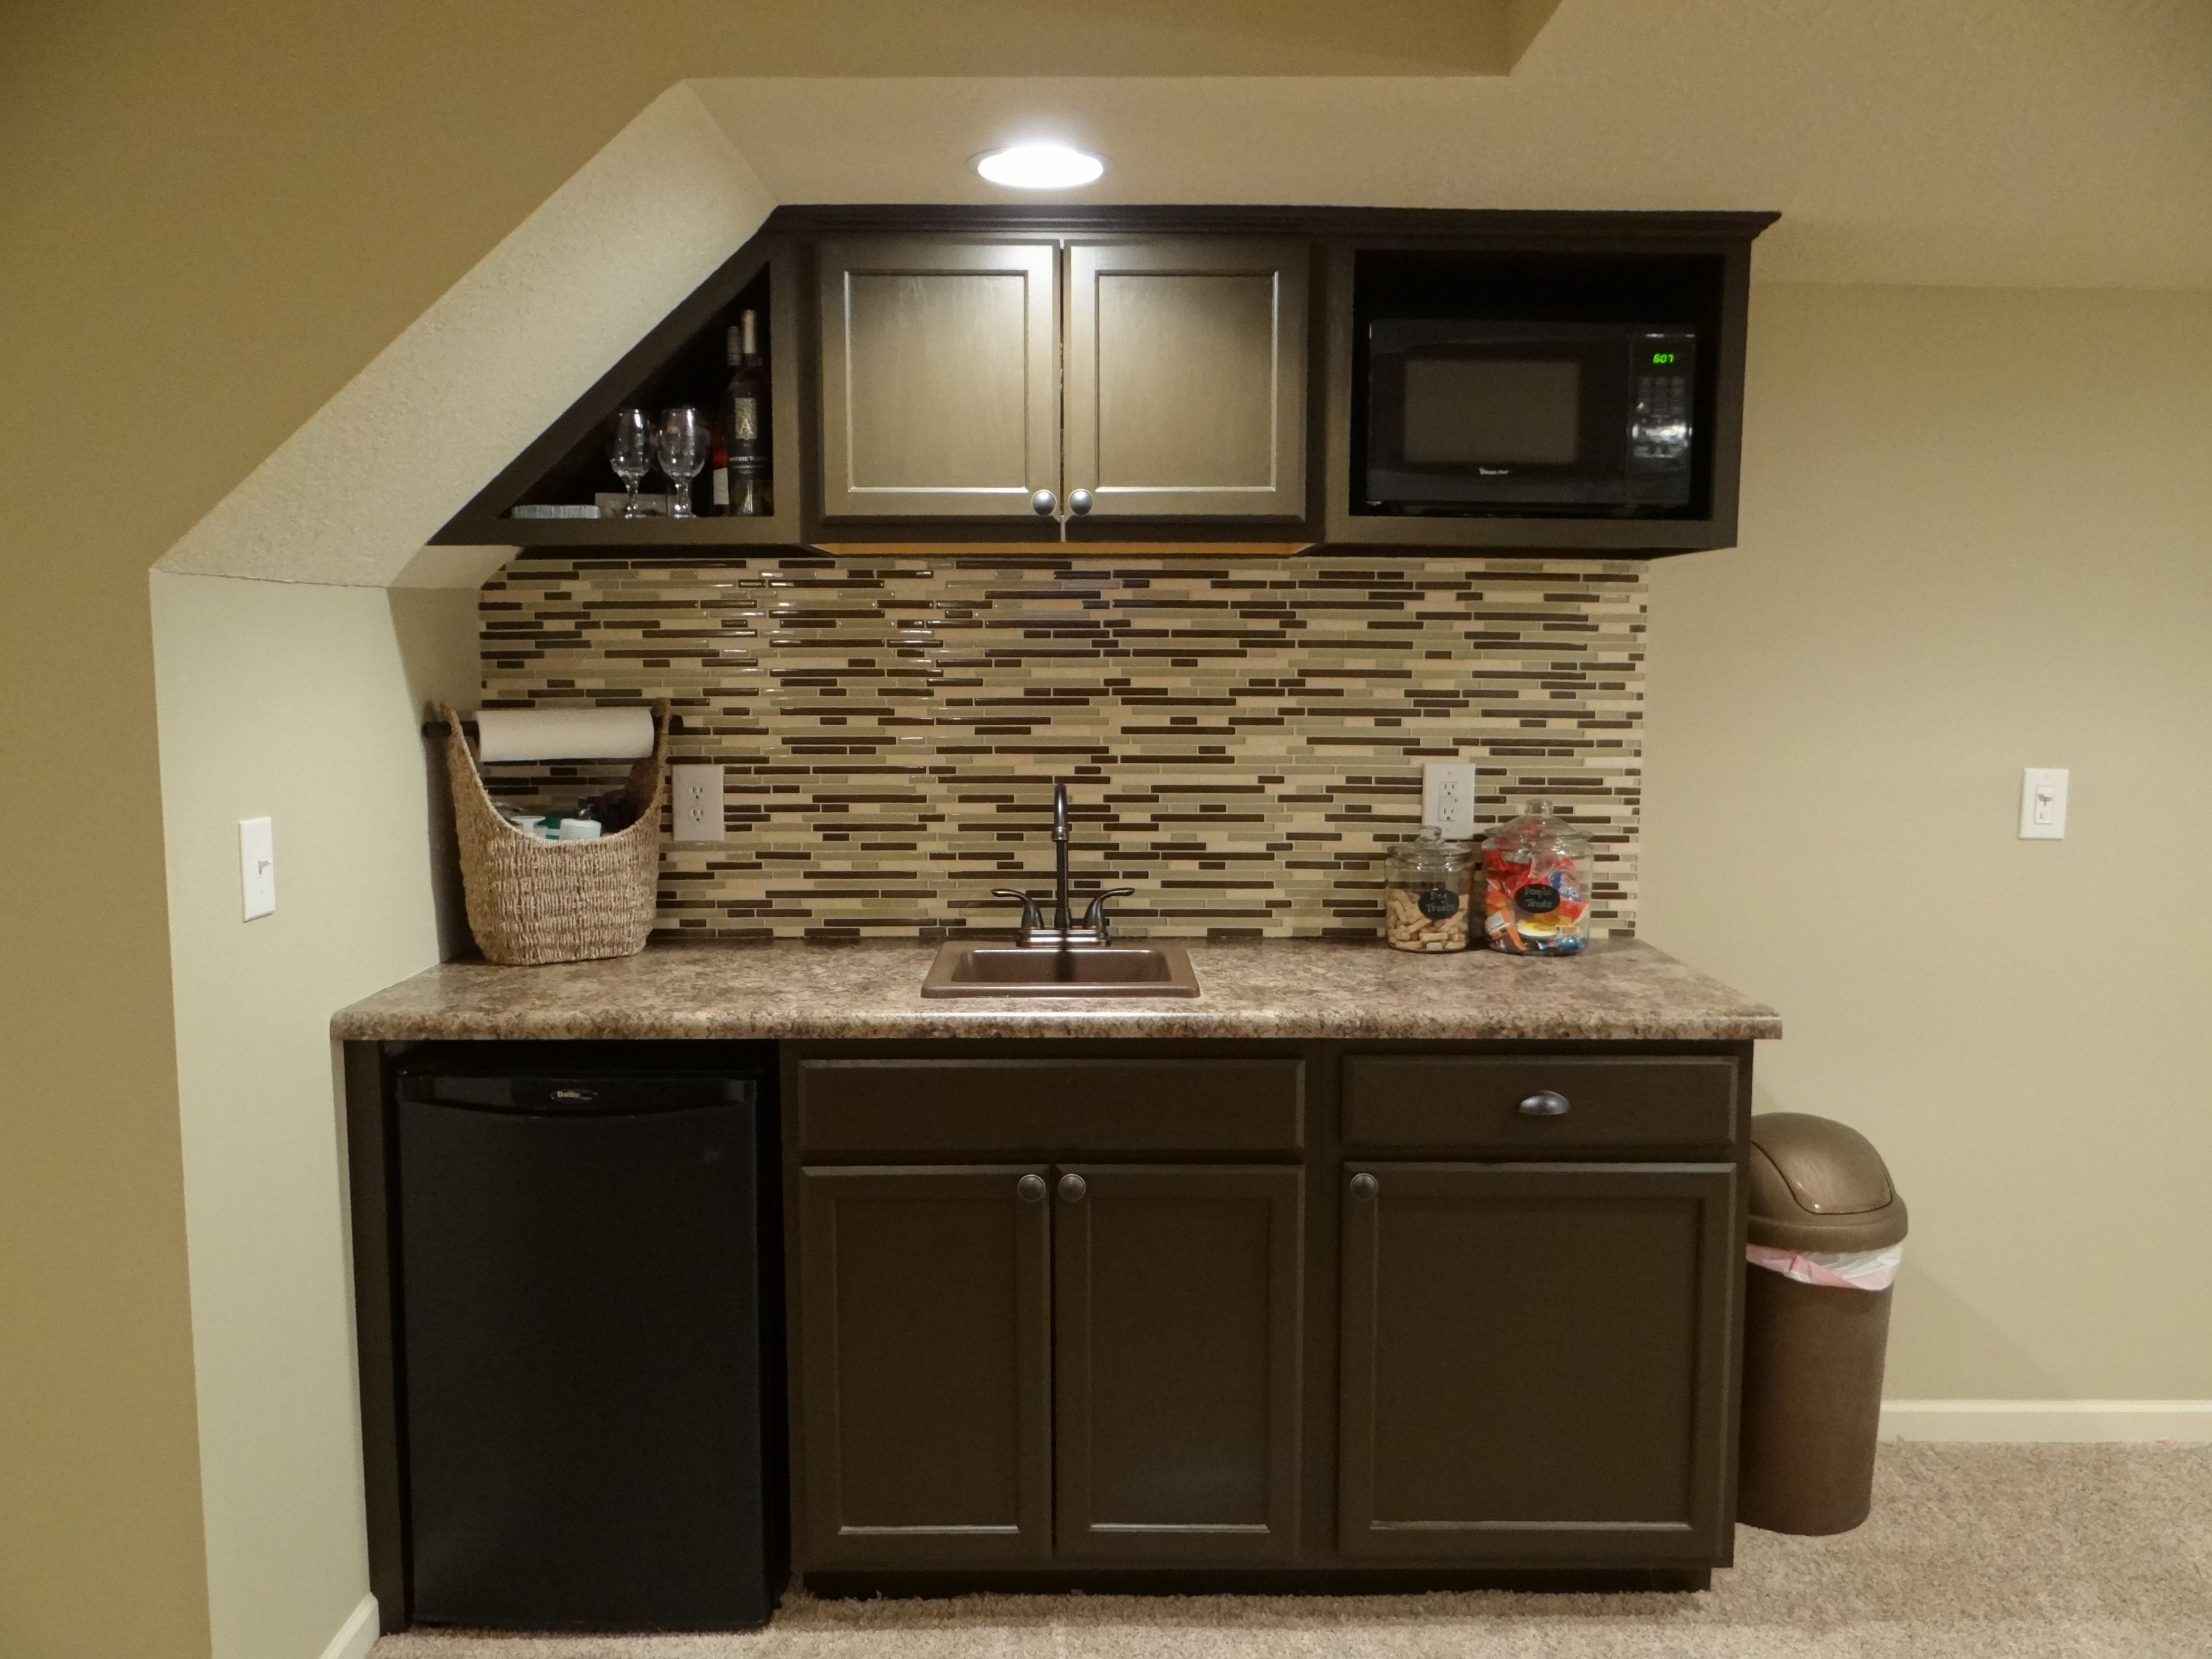 basement wet bar under stairs used cabinets white house ideas in 2019 wet bar basement bar. Black Bedroom Furniture Sets. Home Design Ideas